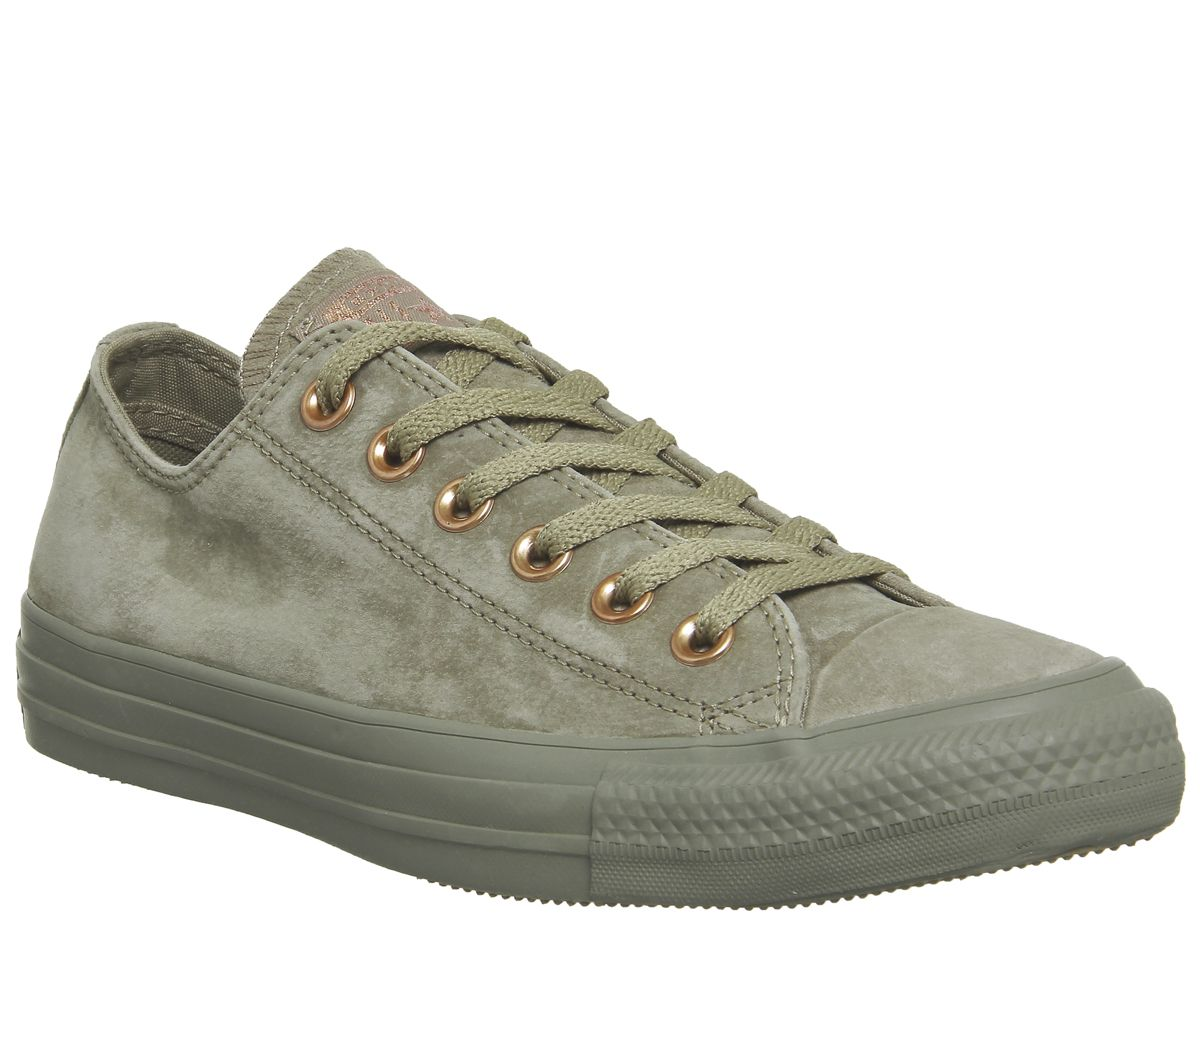 8489b99968f Sentinel Womens Converse Green Suede Lace Up Trainers Size UK 5.5  Ex- Display